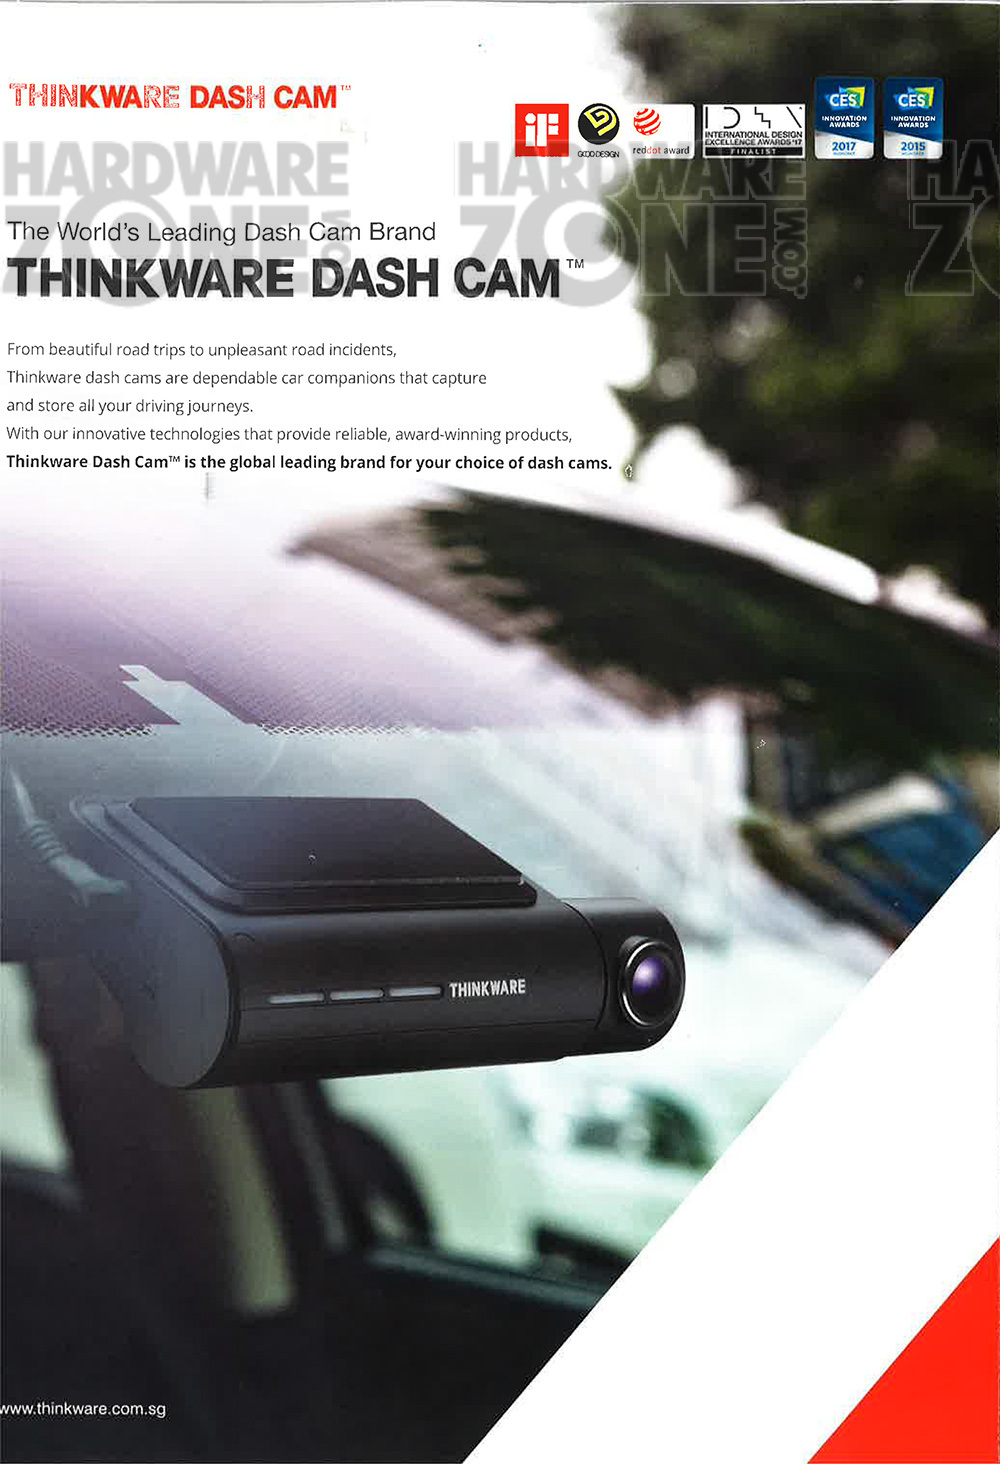 Thinkware dashcam - page 1